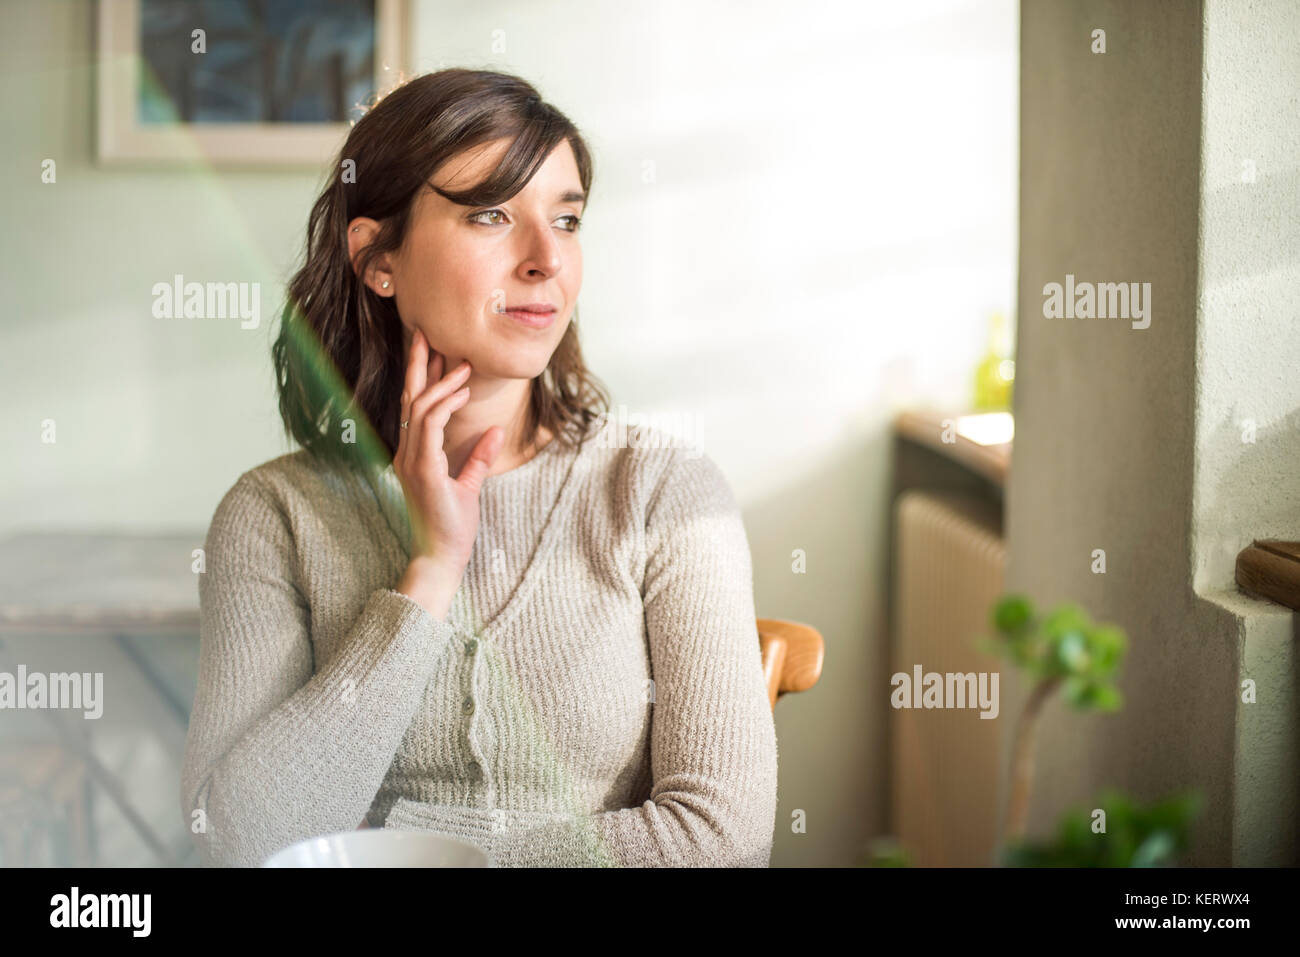 Jeunes adultes contemplative woman looking out window Photo Stock